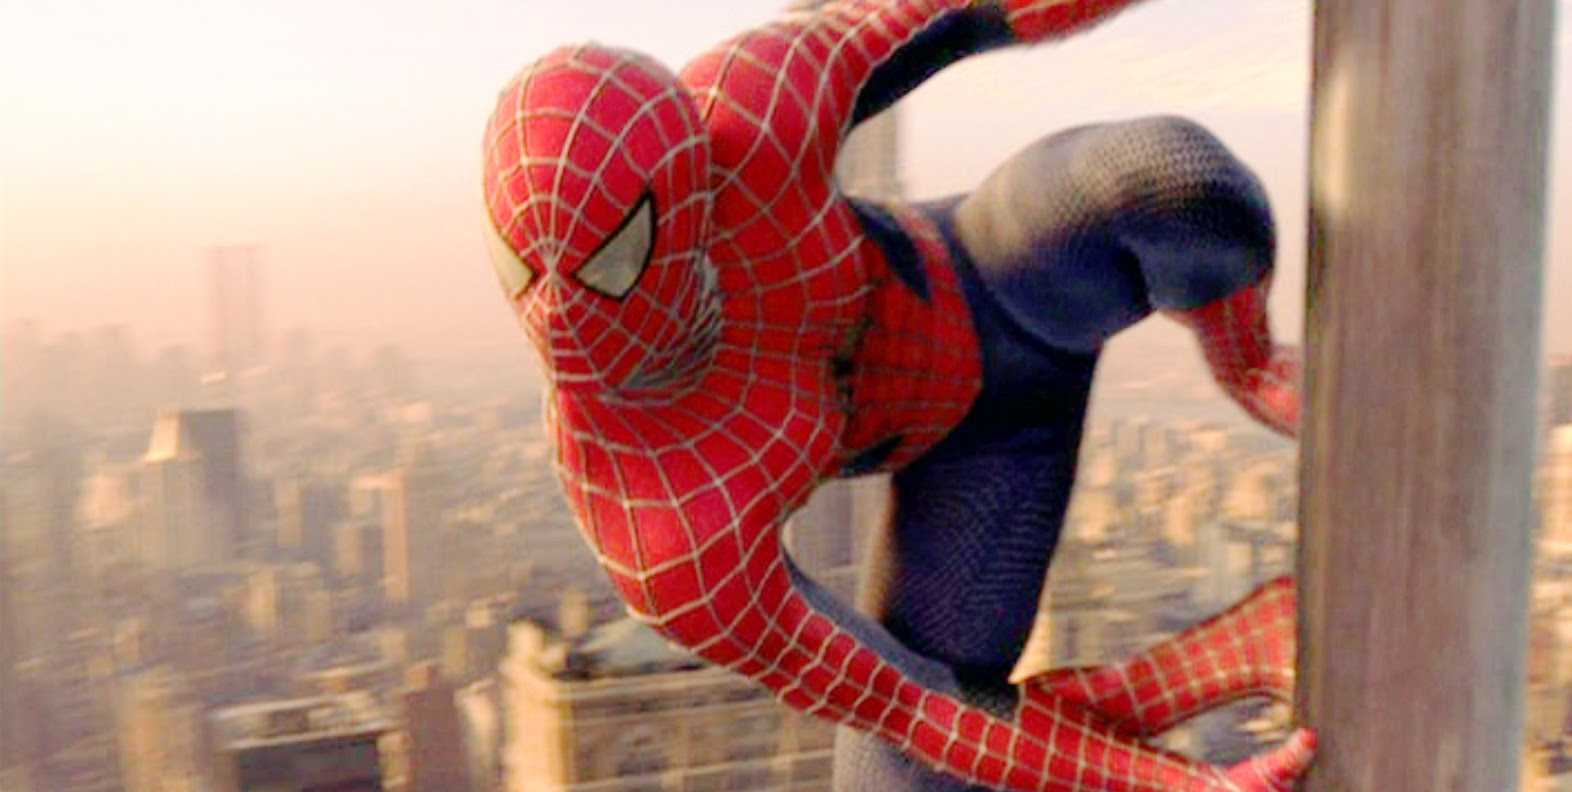 spider man - photo #33